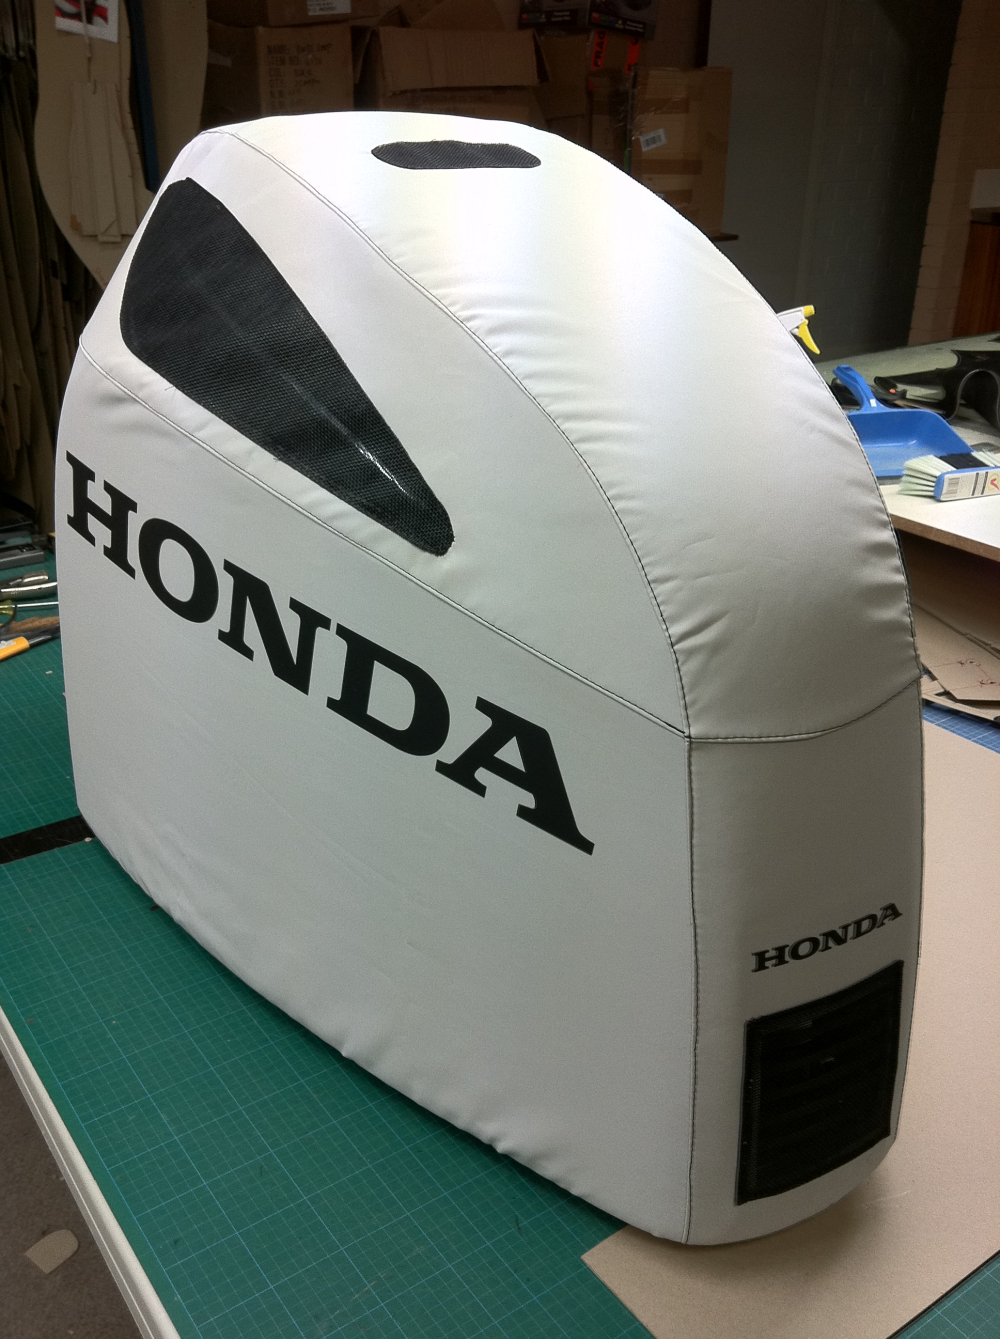 Outboard Covers & Accessories Honda outboard covers